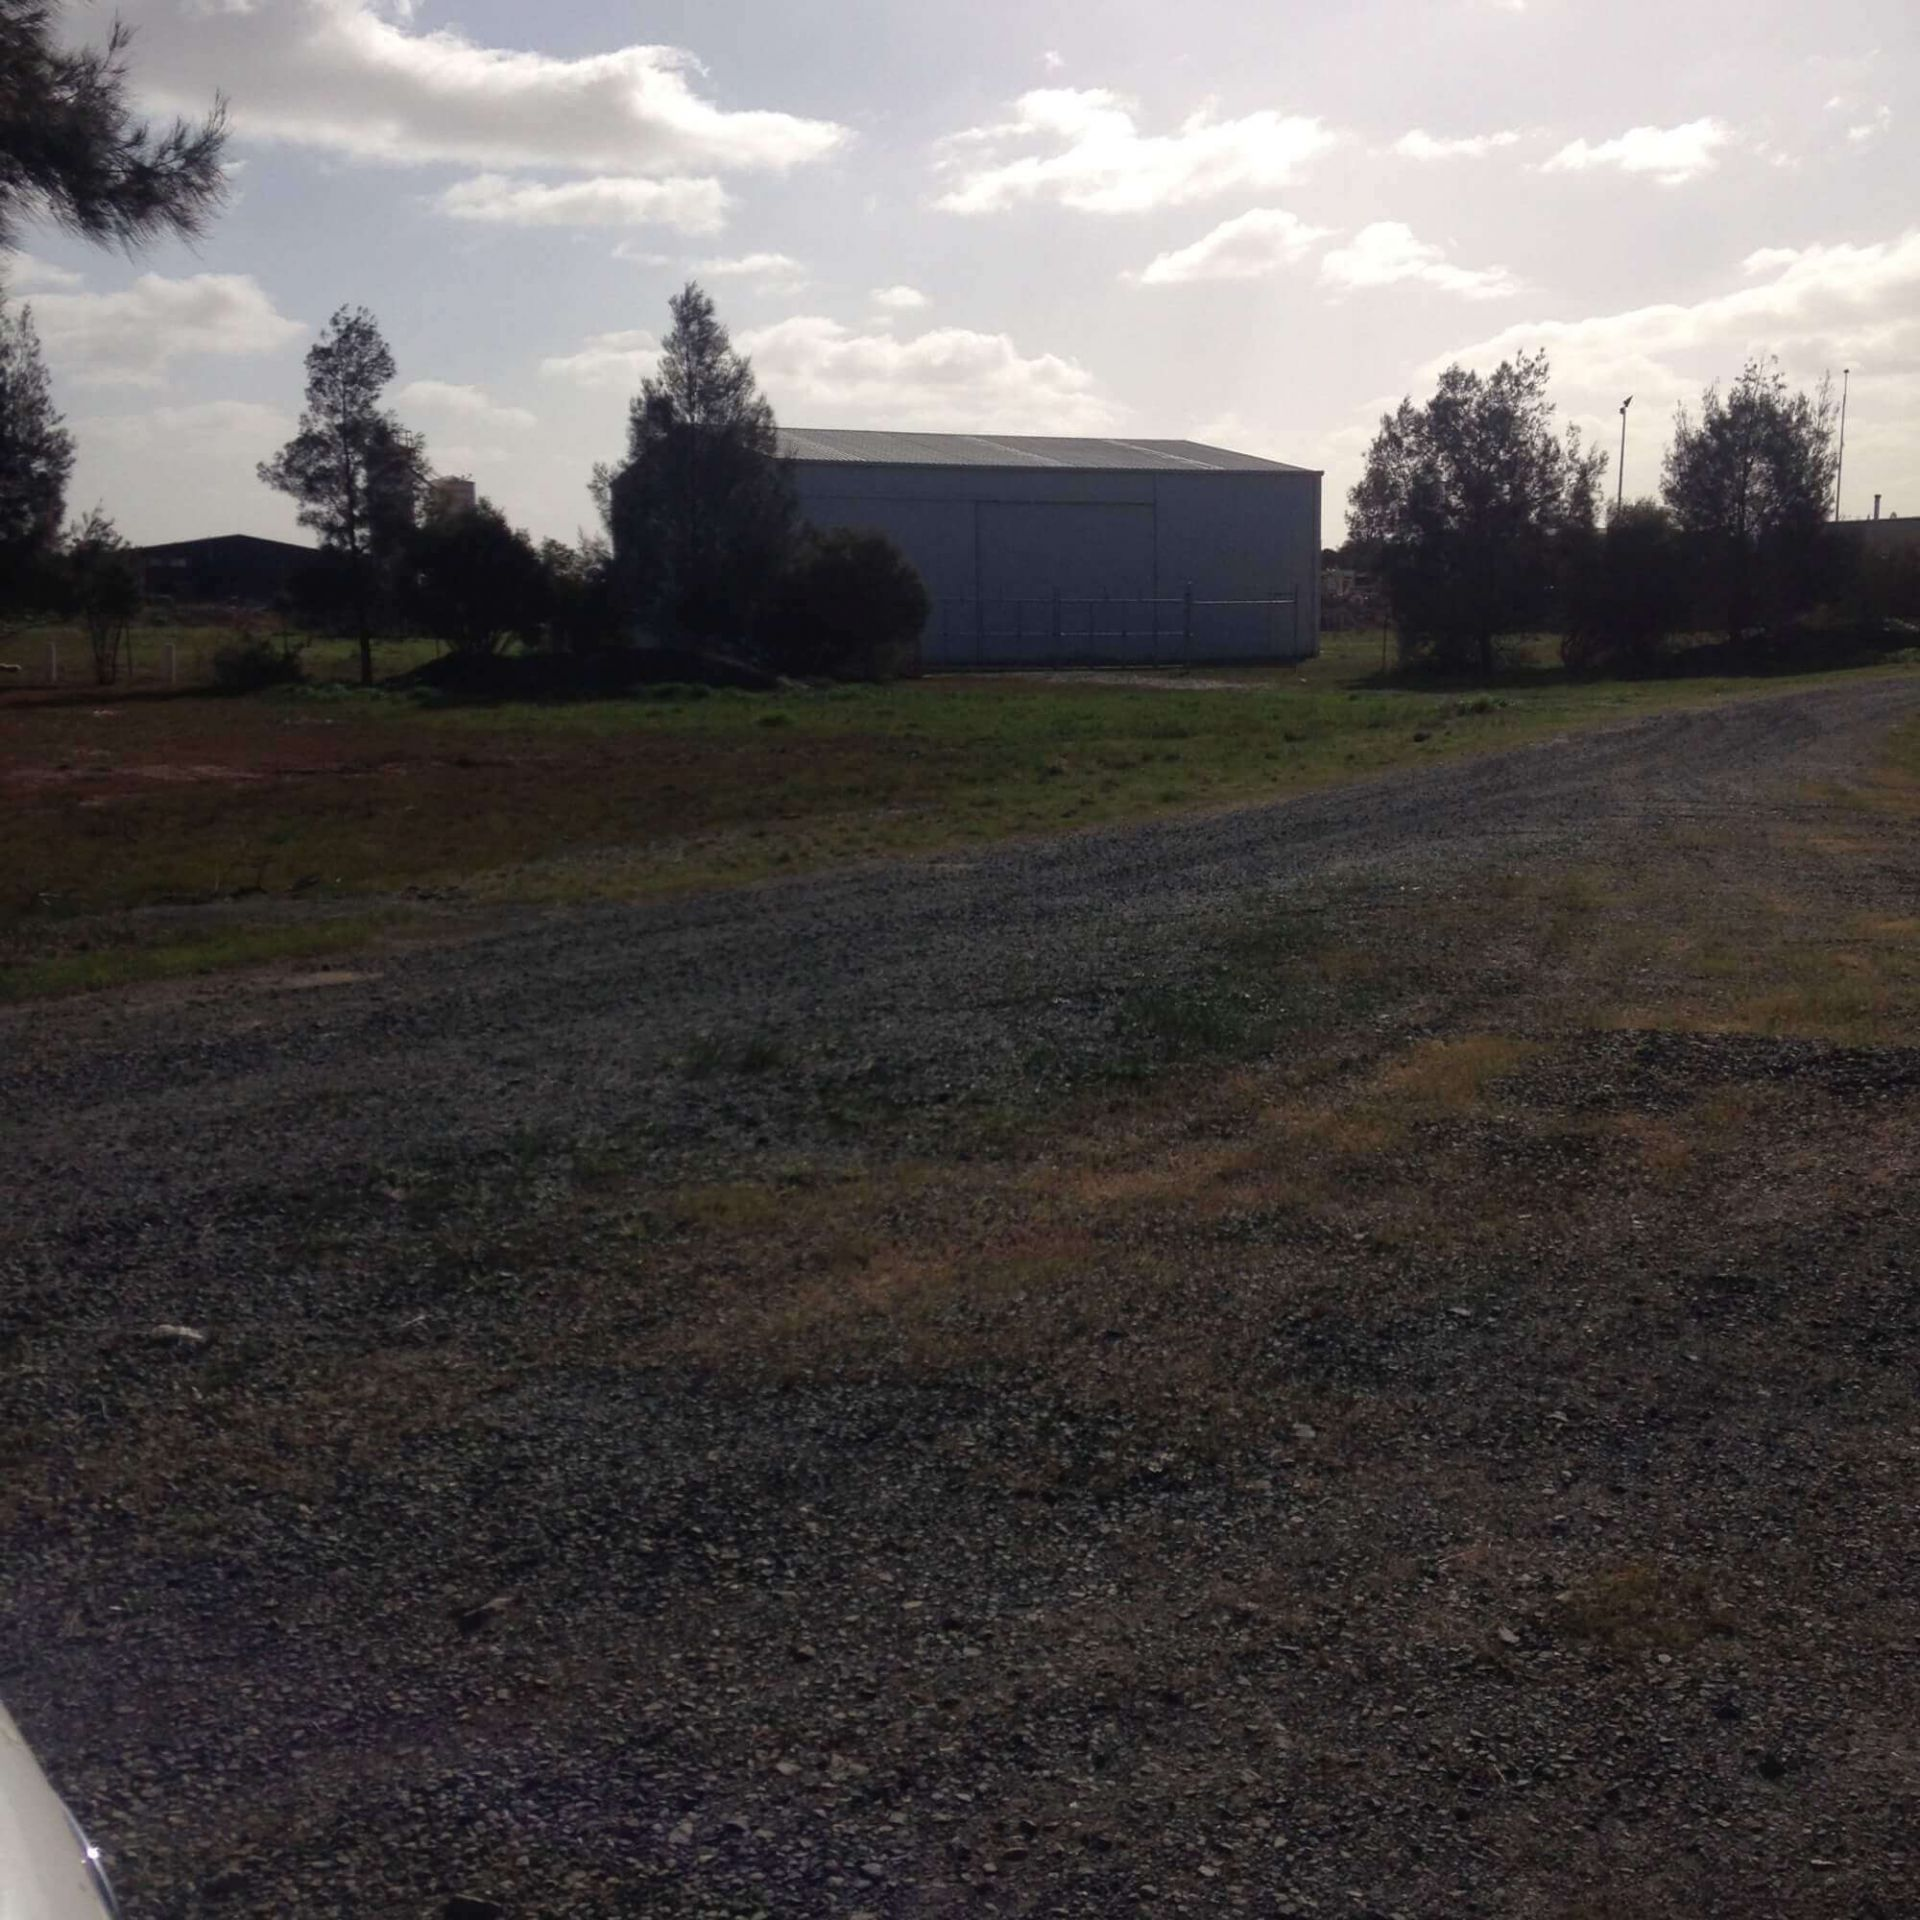 90 Acres Industrial Land - Development Opportunities - NEW TO THE MARKET